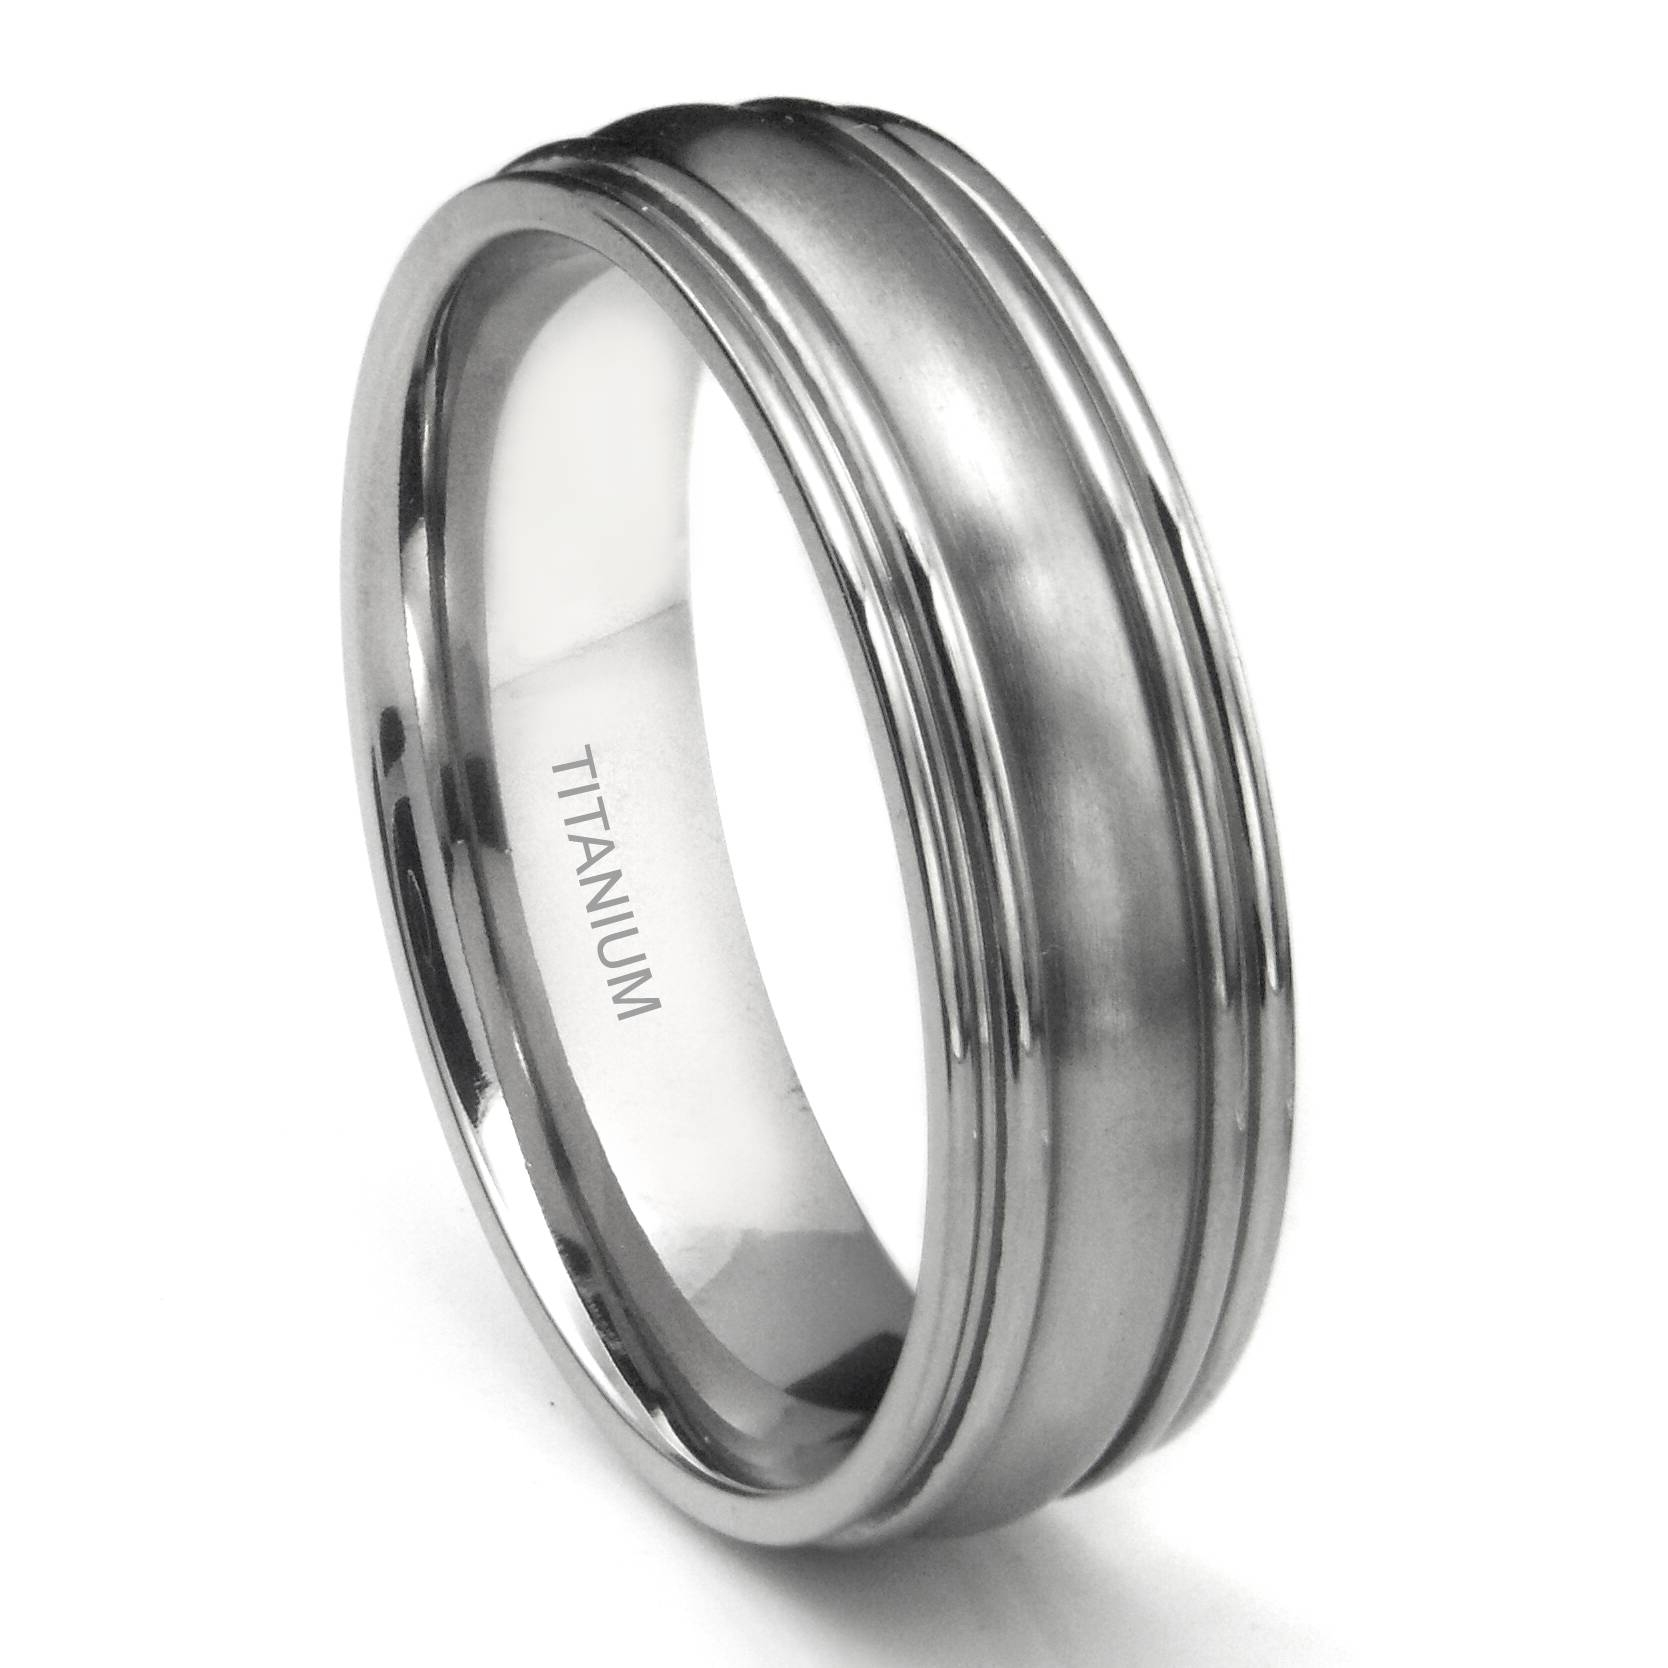 Titanium 7Mm Ribbed Men's Wedding Ring Intended For 7Mm Tungsten Wedding Bands (View 15 of 15)